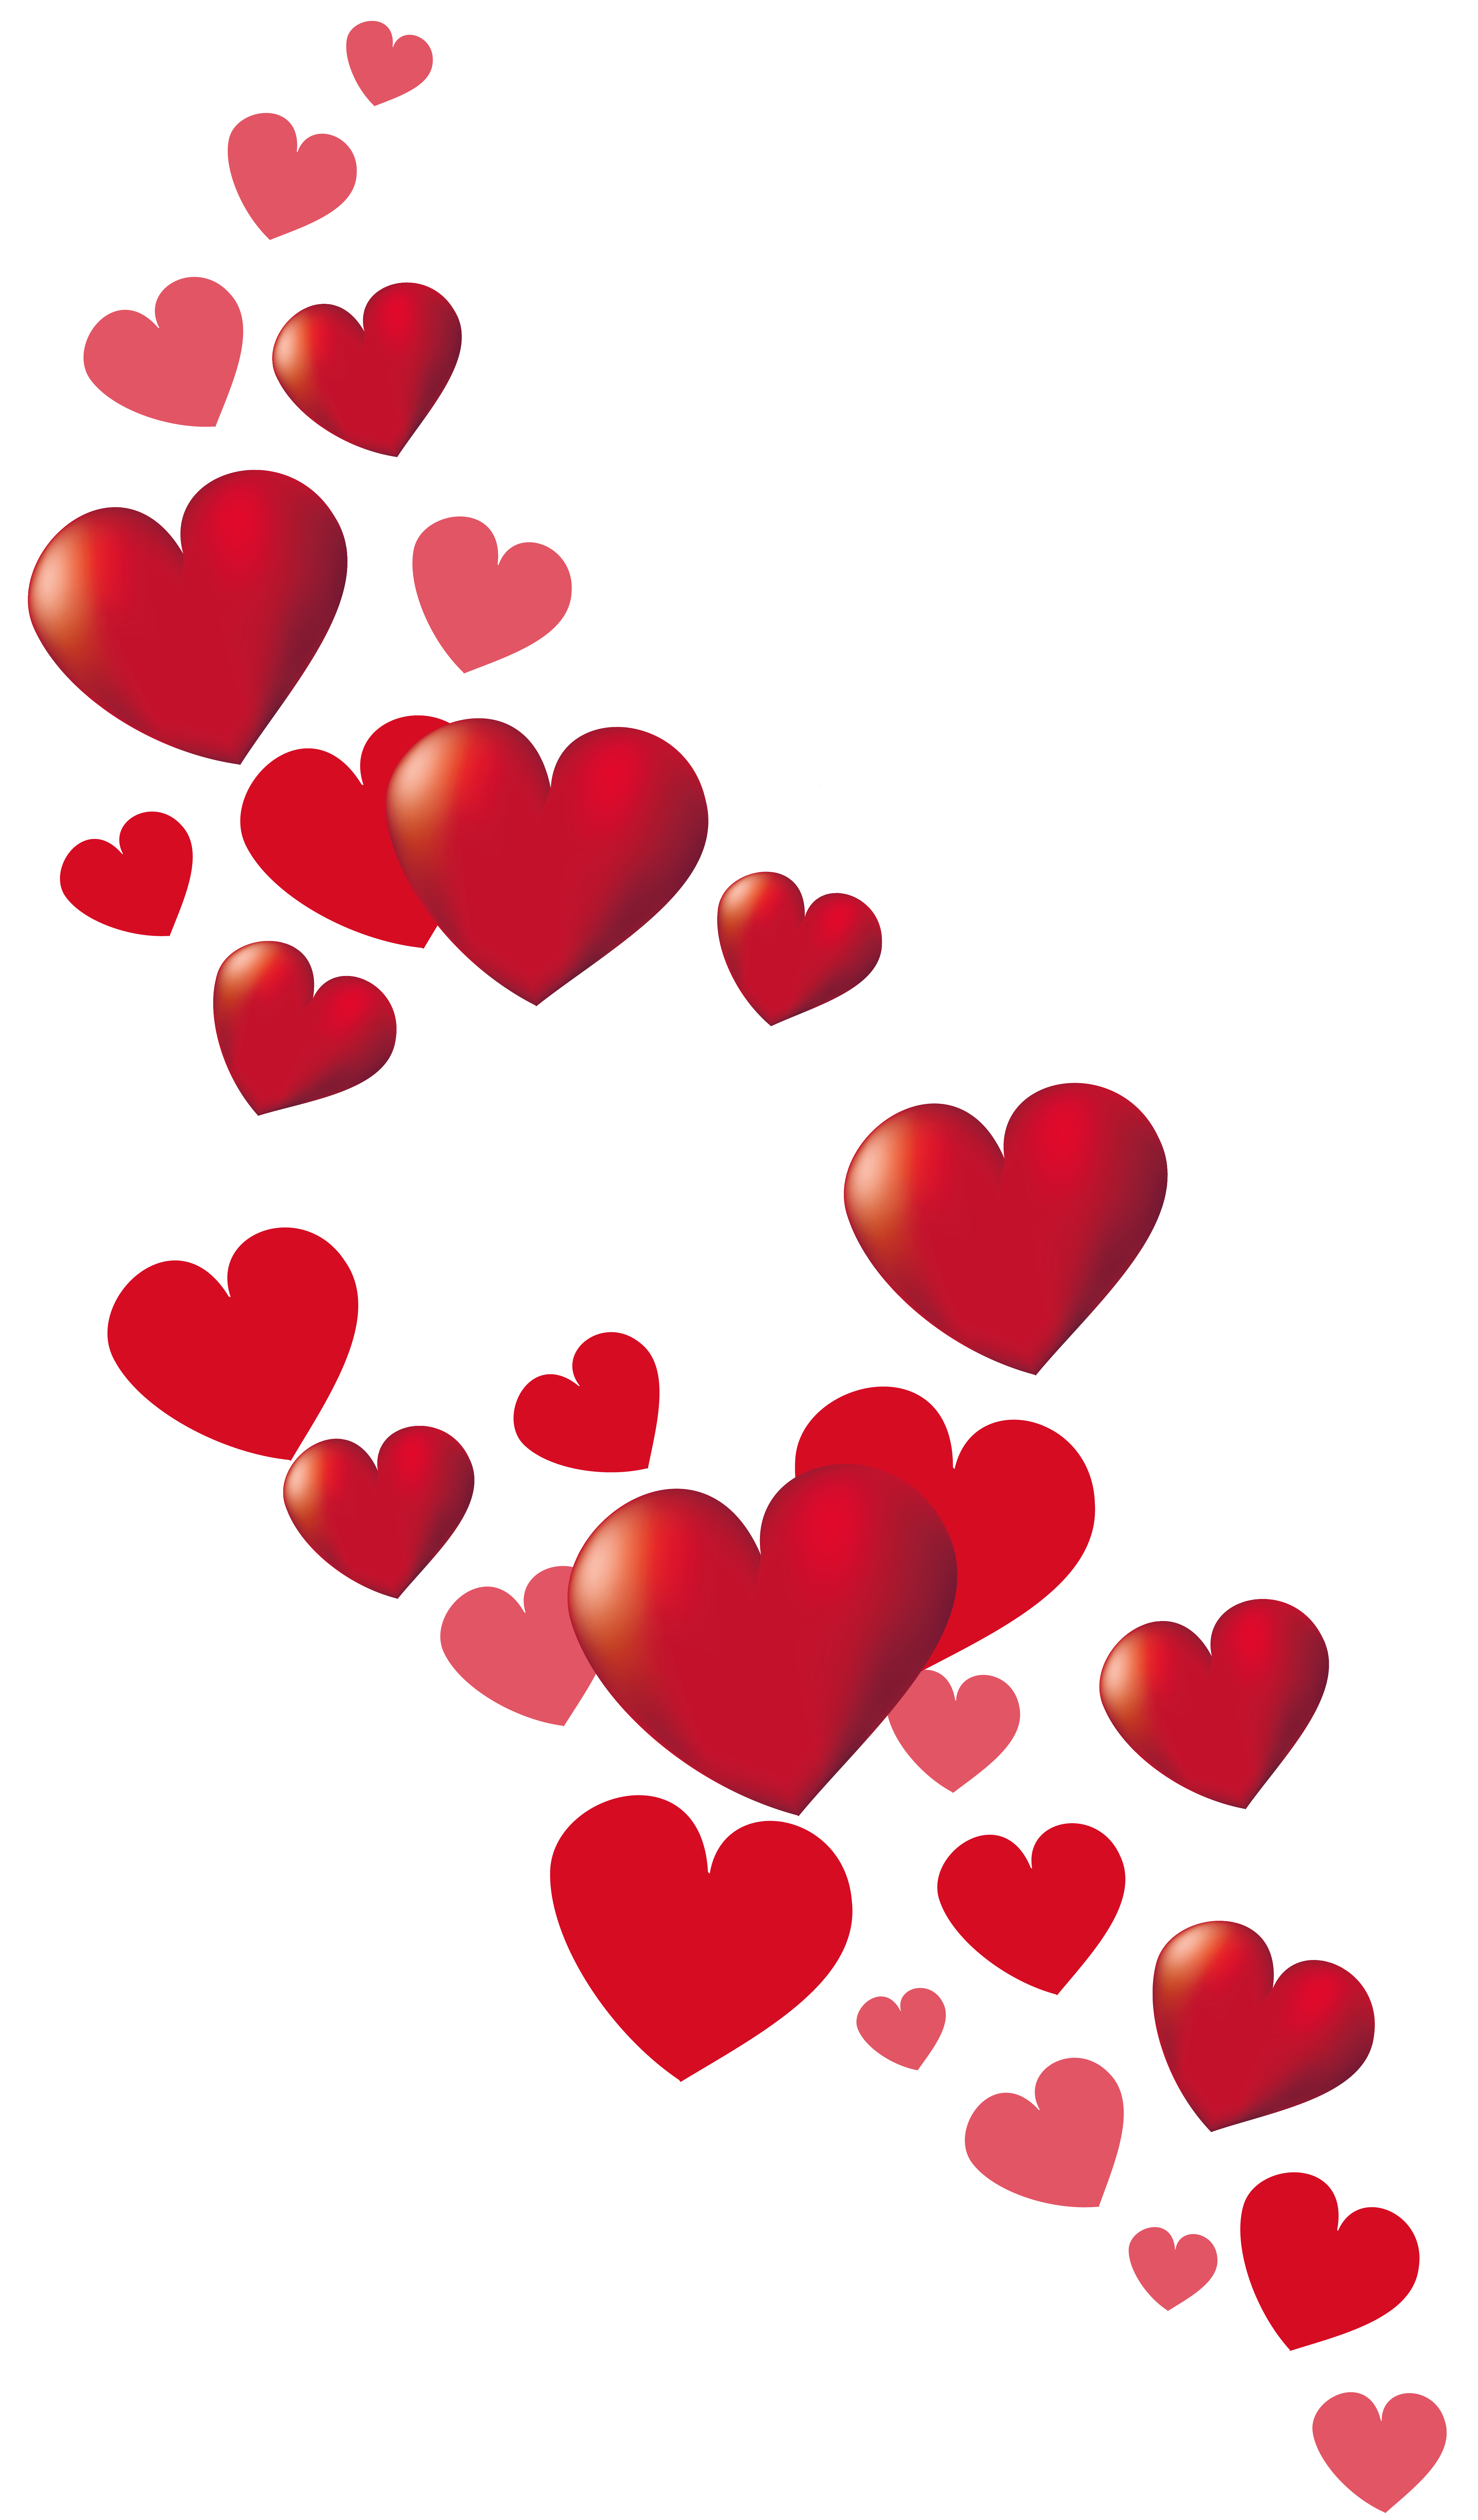 Hearts decor png picture. Valentine clipart stamp